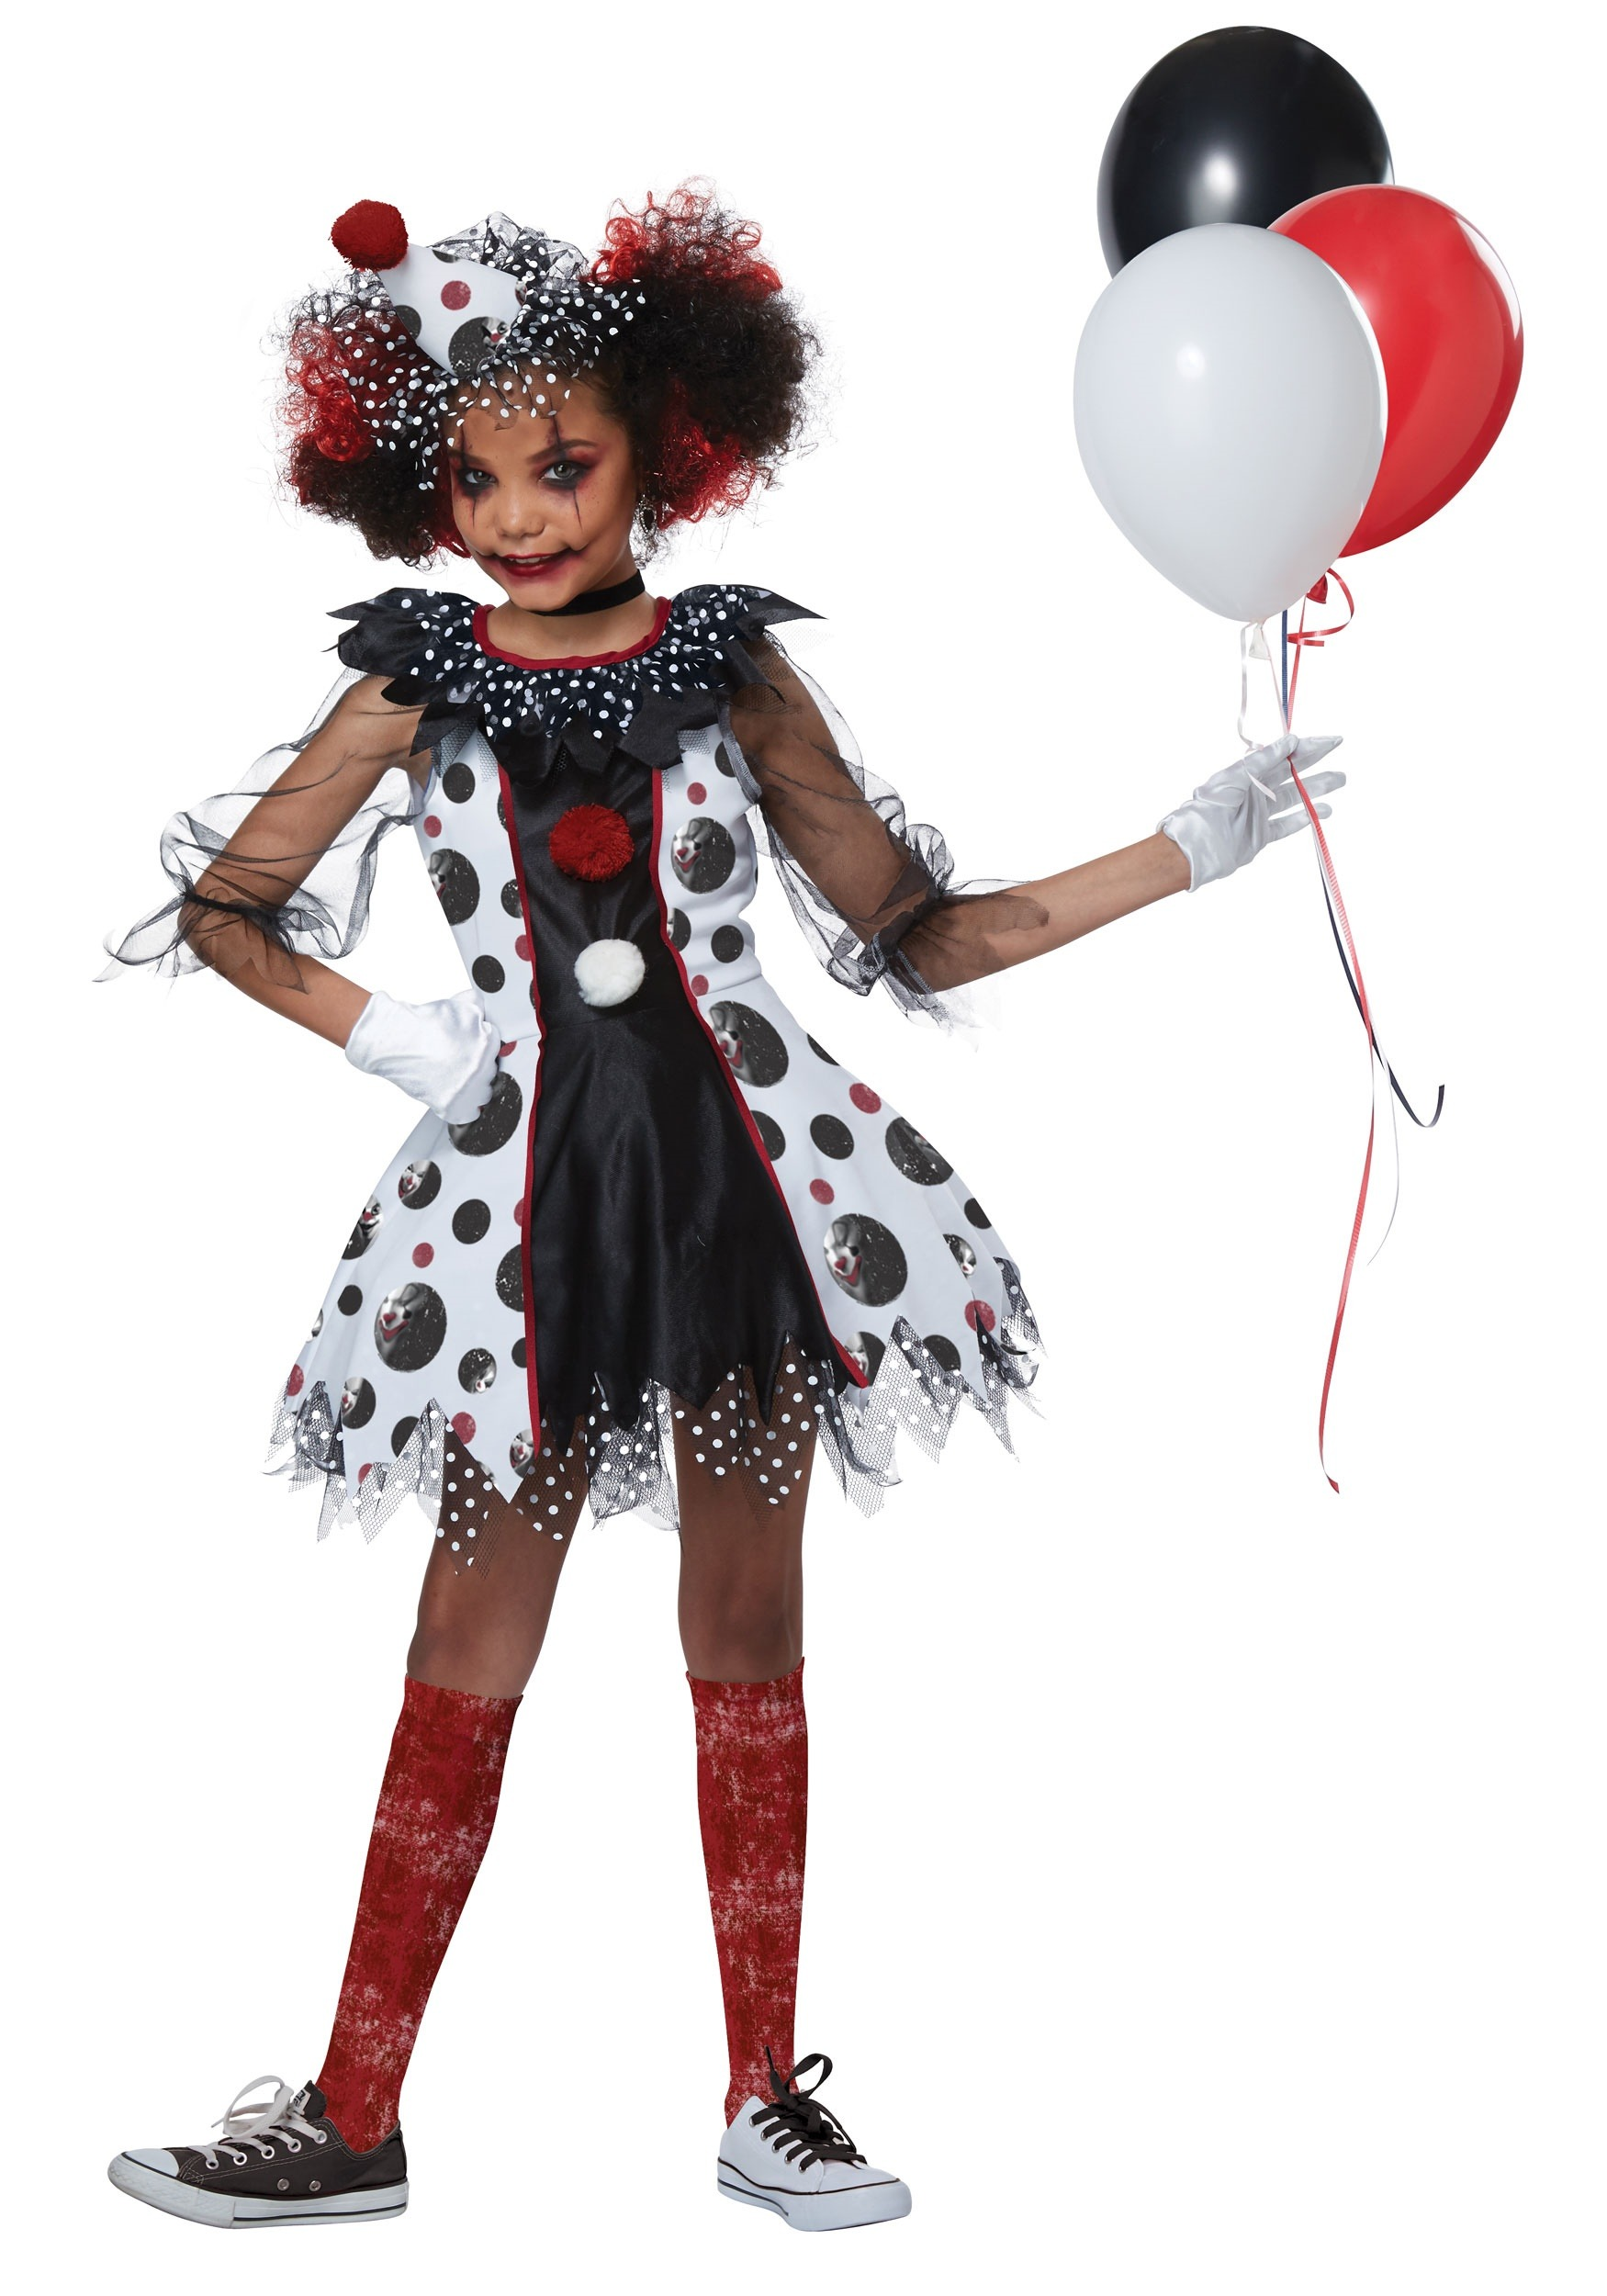 Killer Clown Halloween Costumes For Girls.Creepy Clown Girls Costume